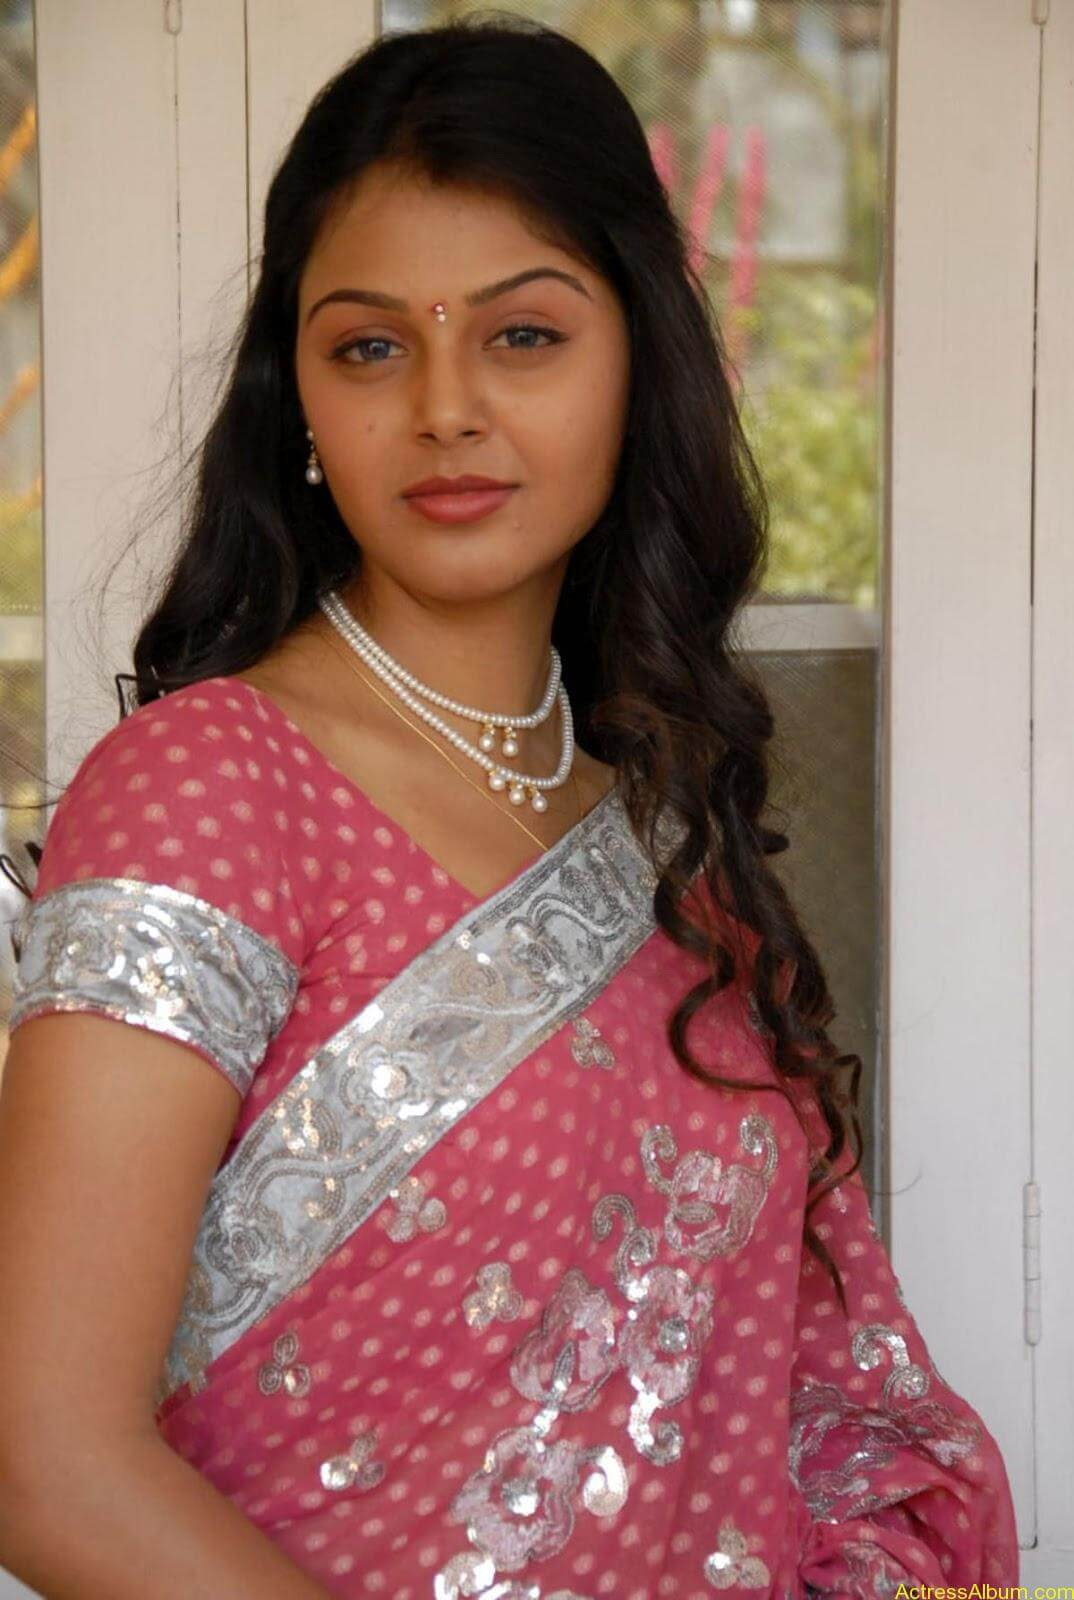 Monal gajjar Hot Saree Stills (4)